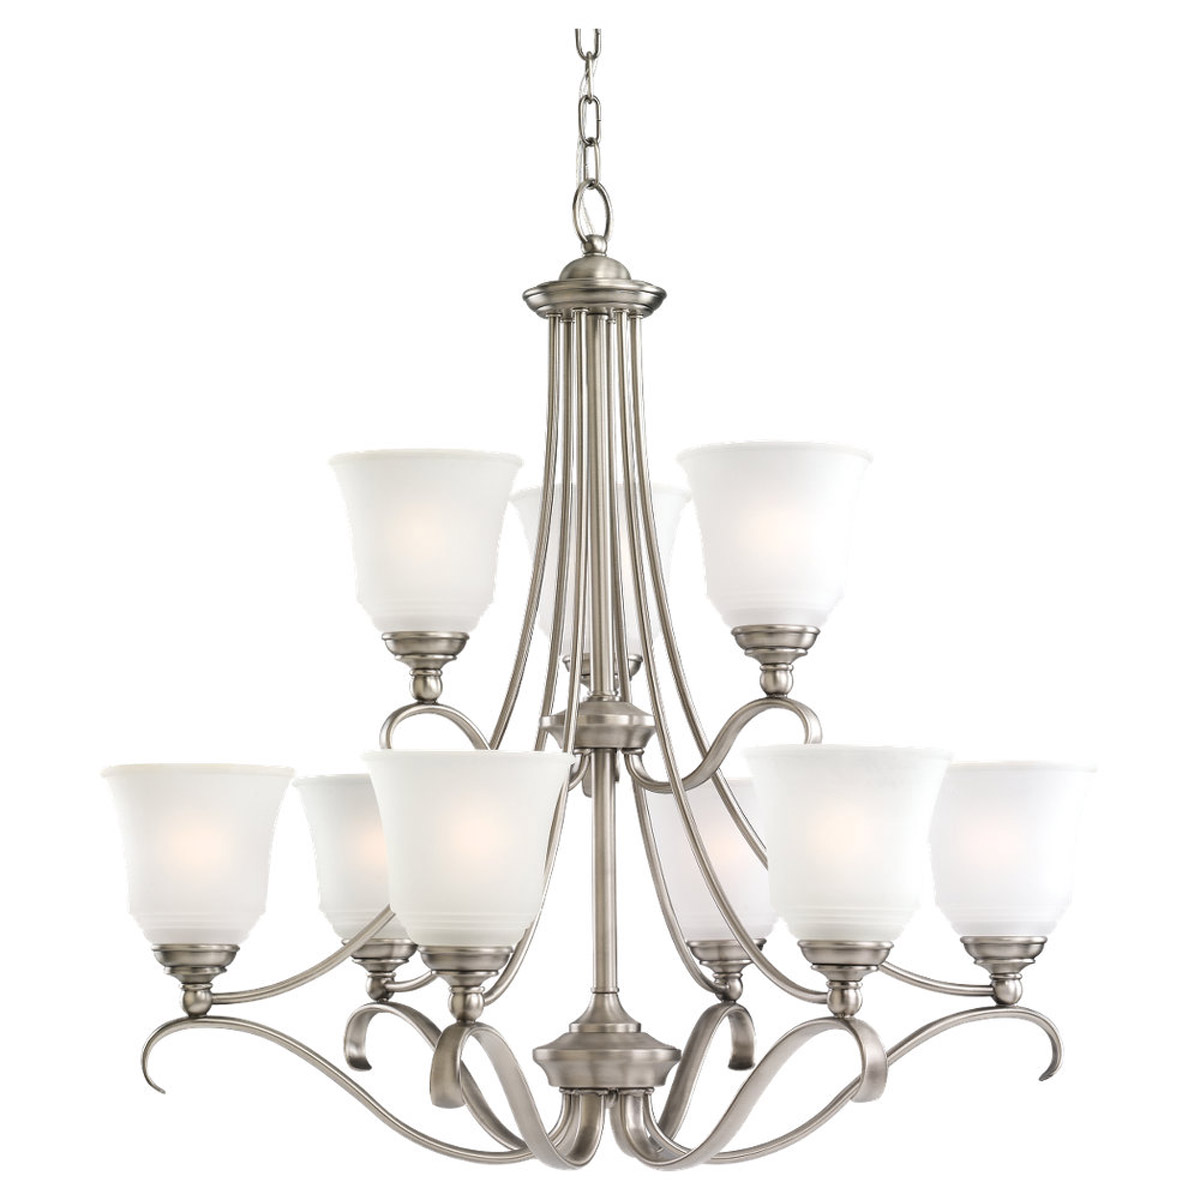 Sea Gull 39381BLE-965 Parkview 9 Light 31 inch Antique Brushed Nickel Chandelier Ceiling Light in Satin Etched Glass photo